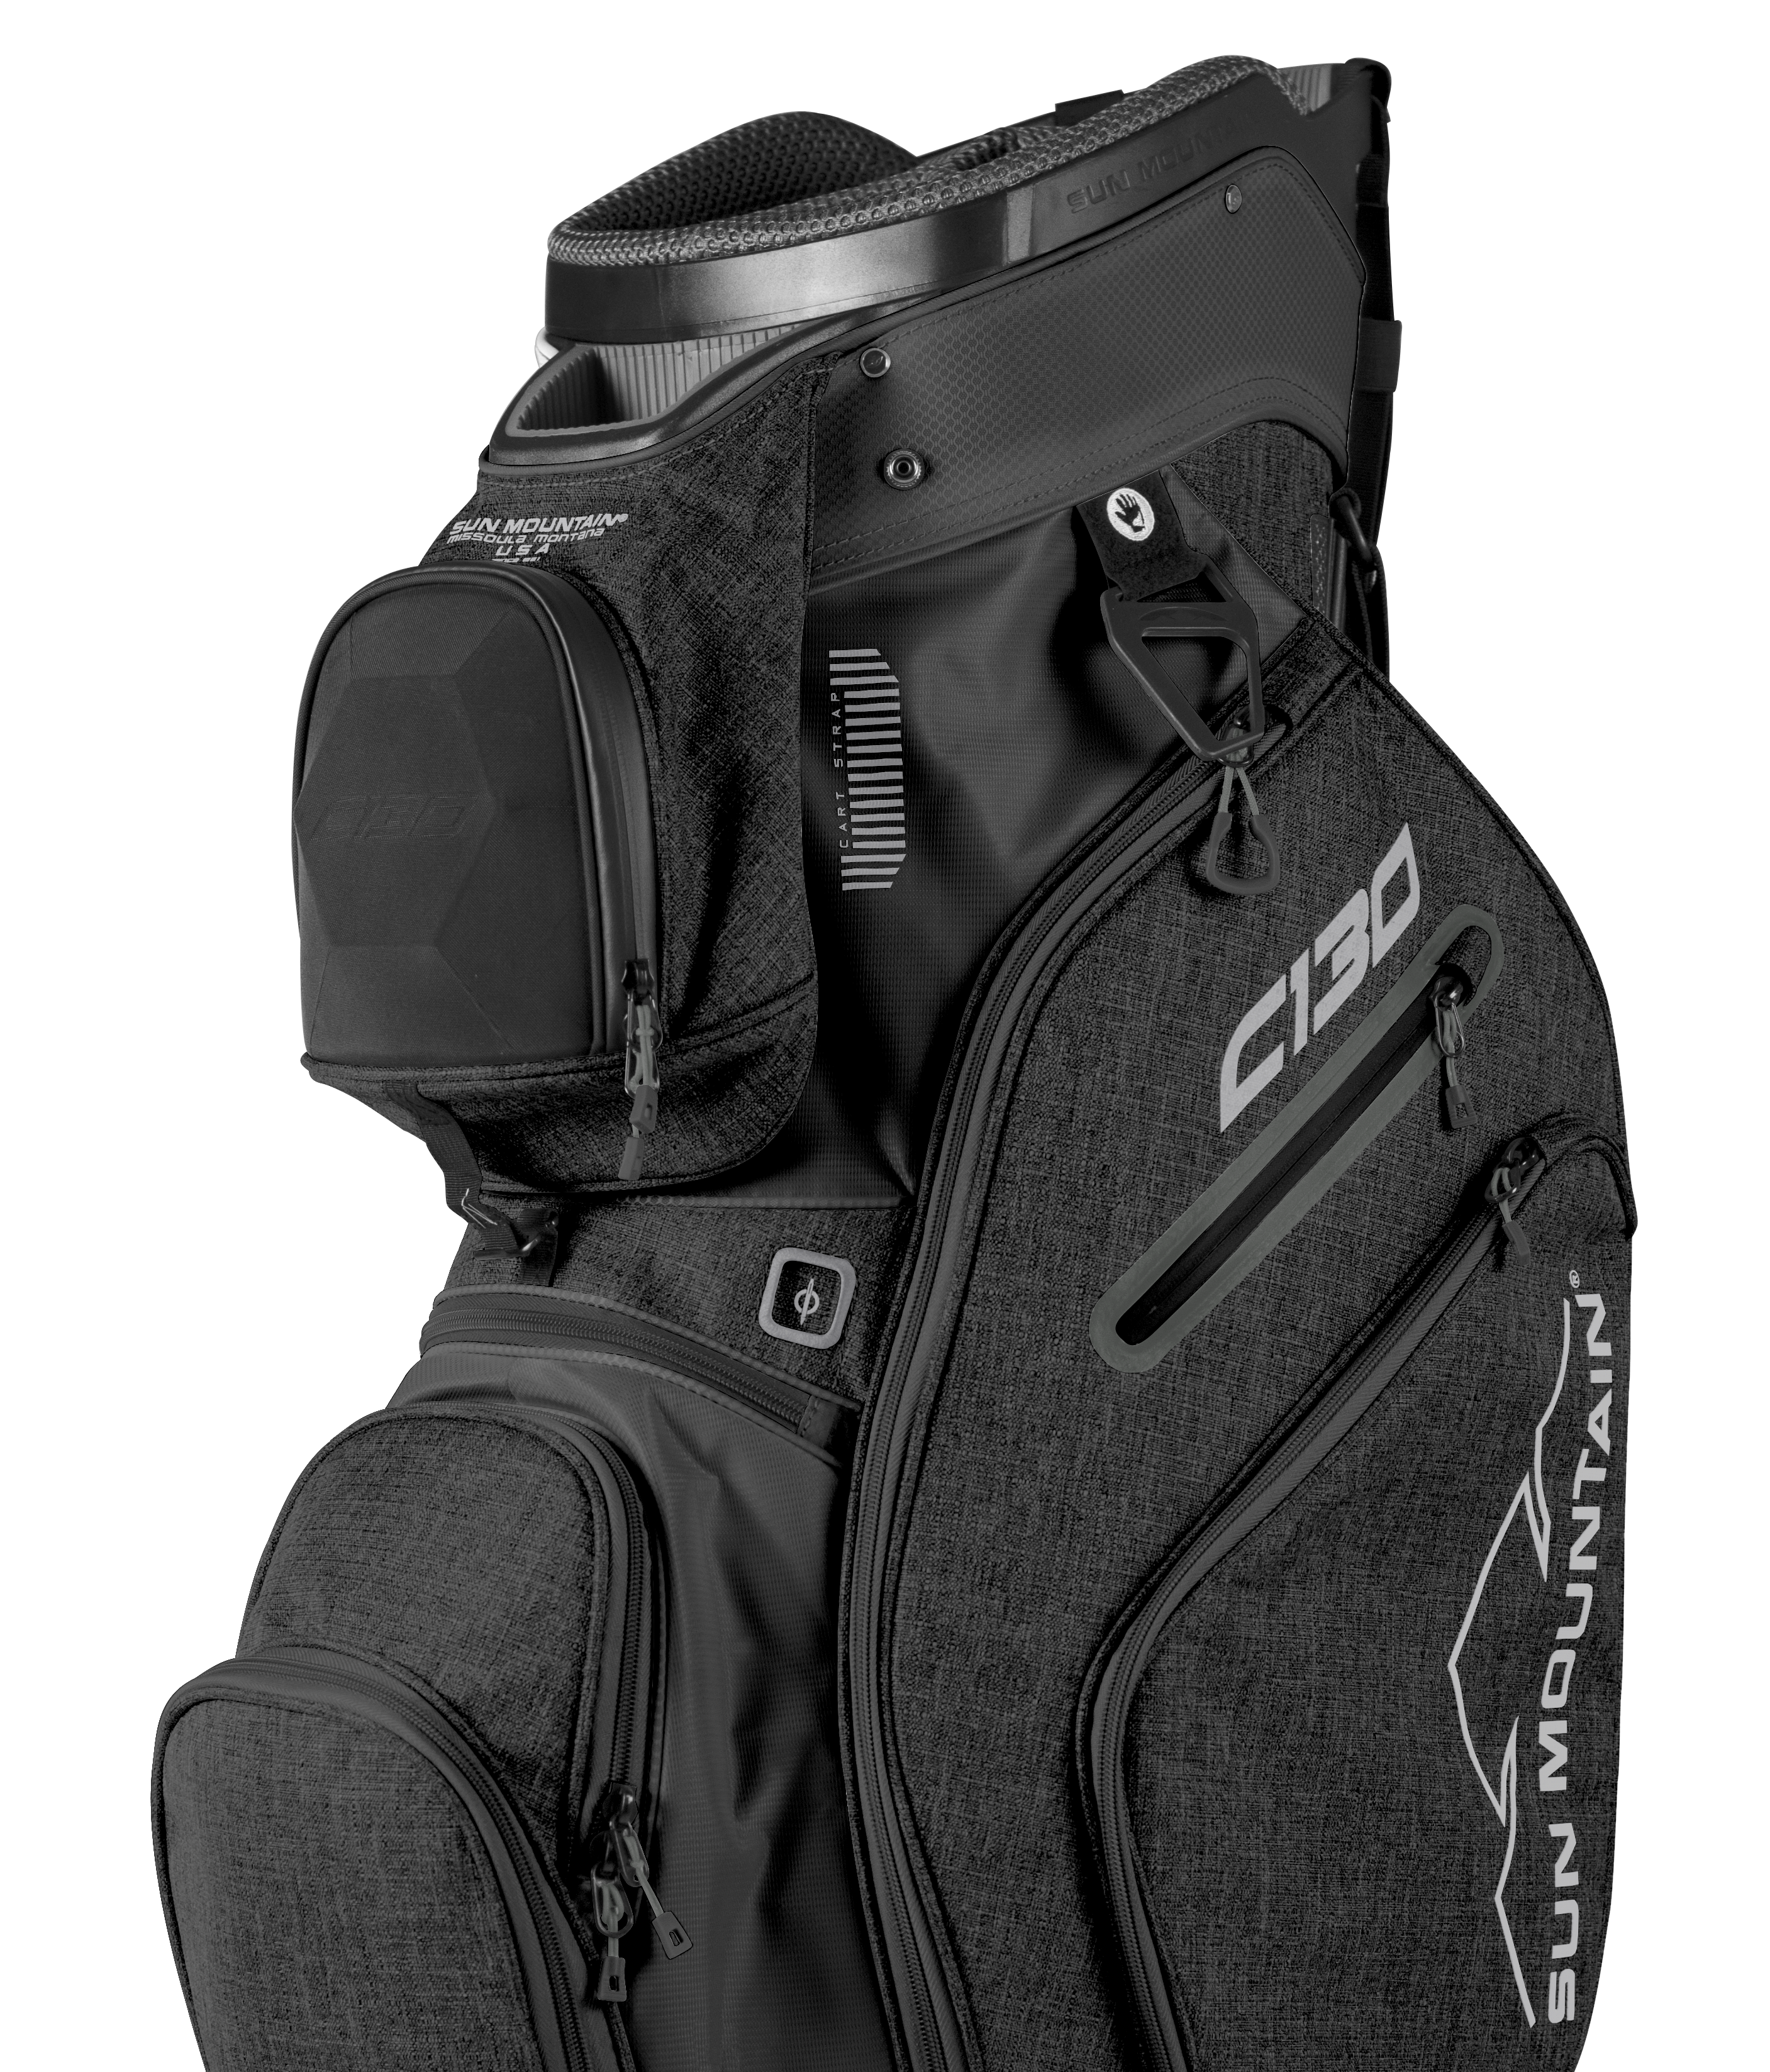 For Those Golfers Who Want A C 130 But Prefer A Top Without Individual Club Dividers Sun Mountain Offers The C 130 5 Way It Ha Golf Bags Golf Gifts Mens Golf